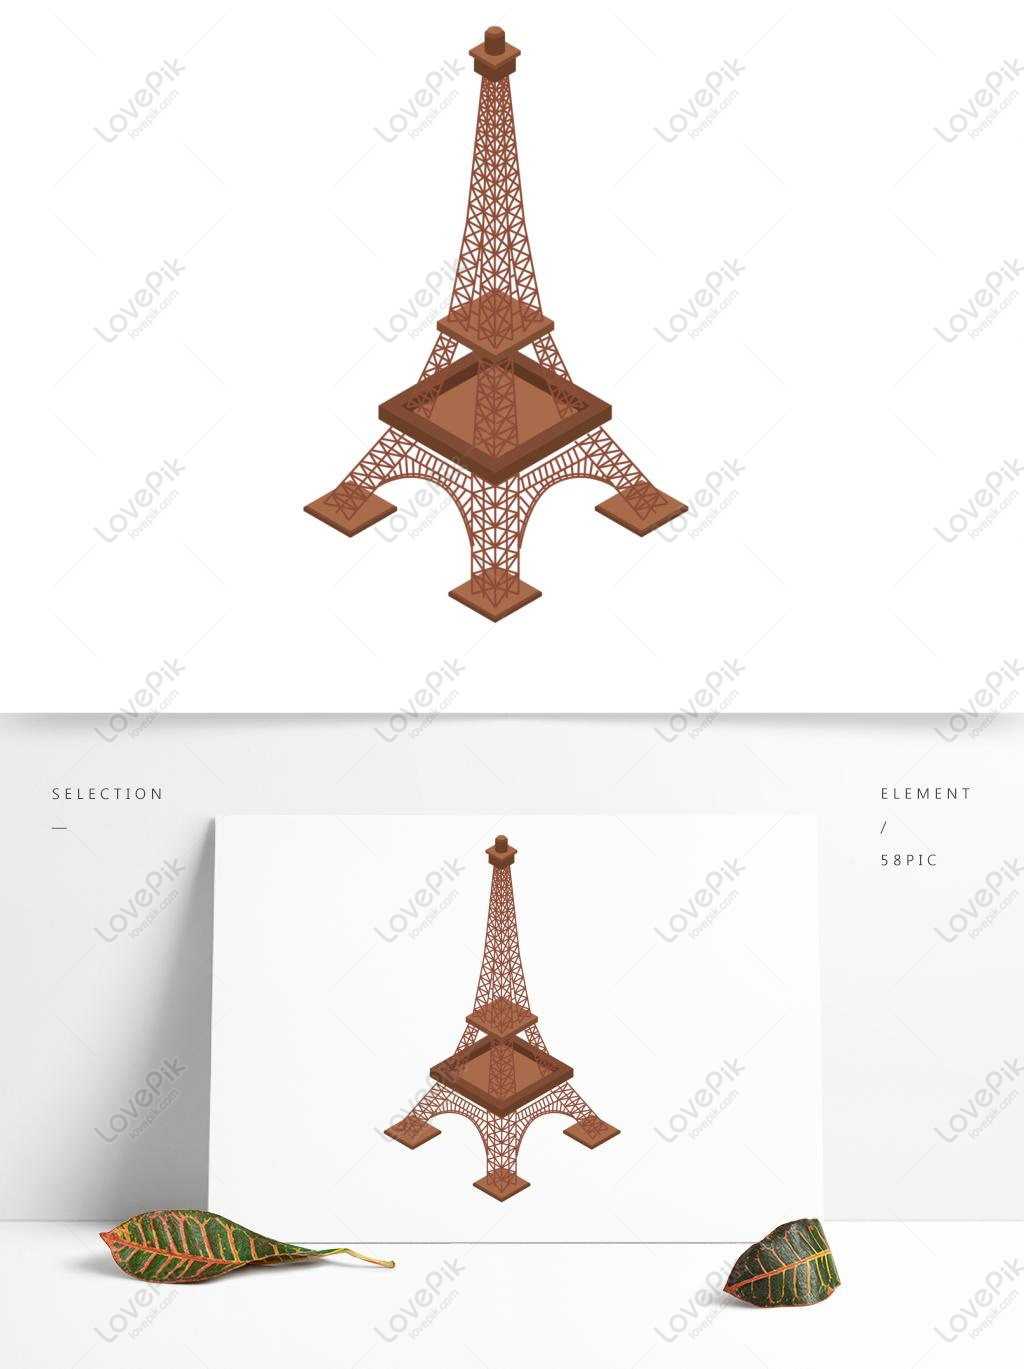 Eiffel Tower Graphics Image Picture Free Download 400050192 Lovepik Com